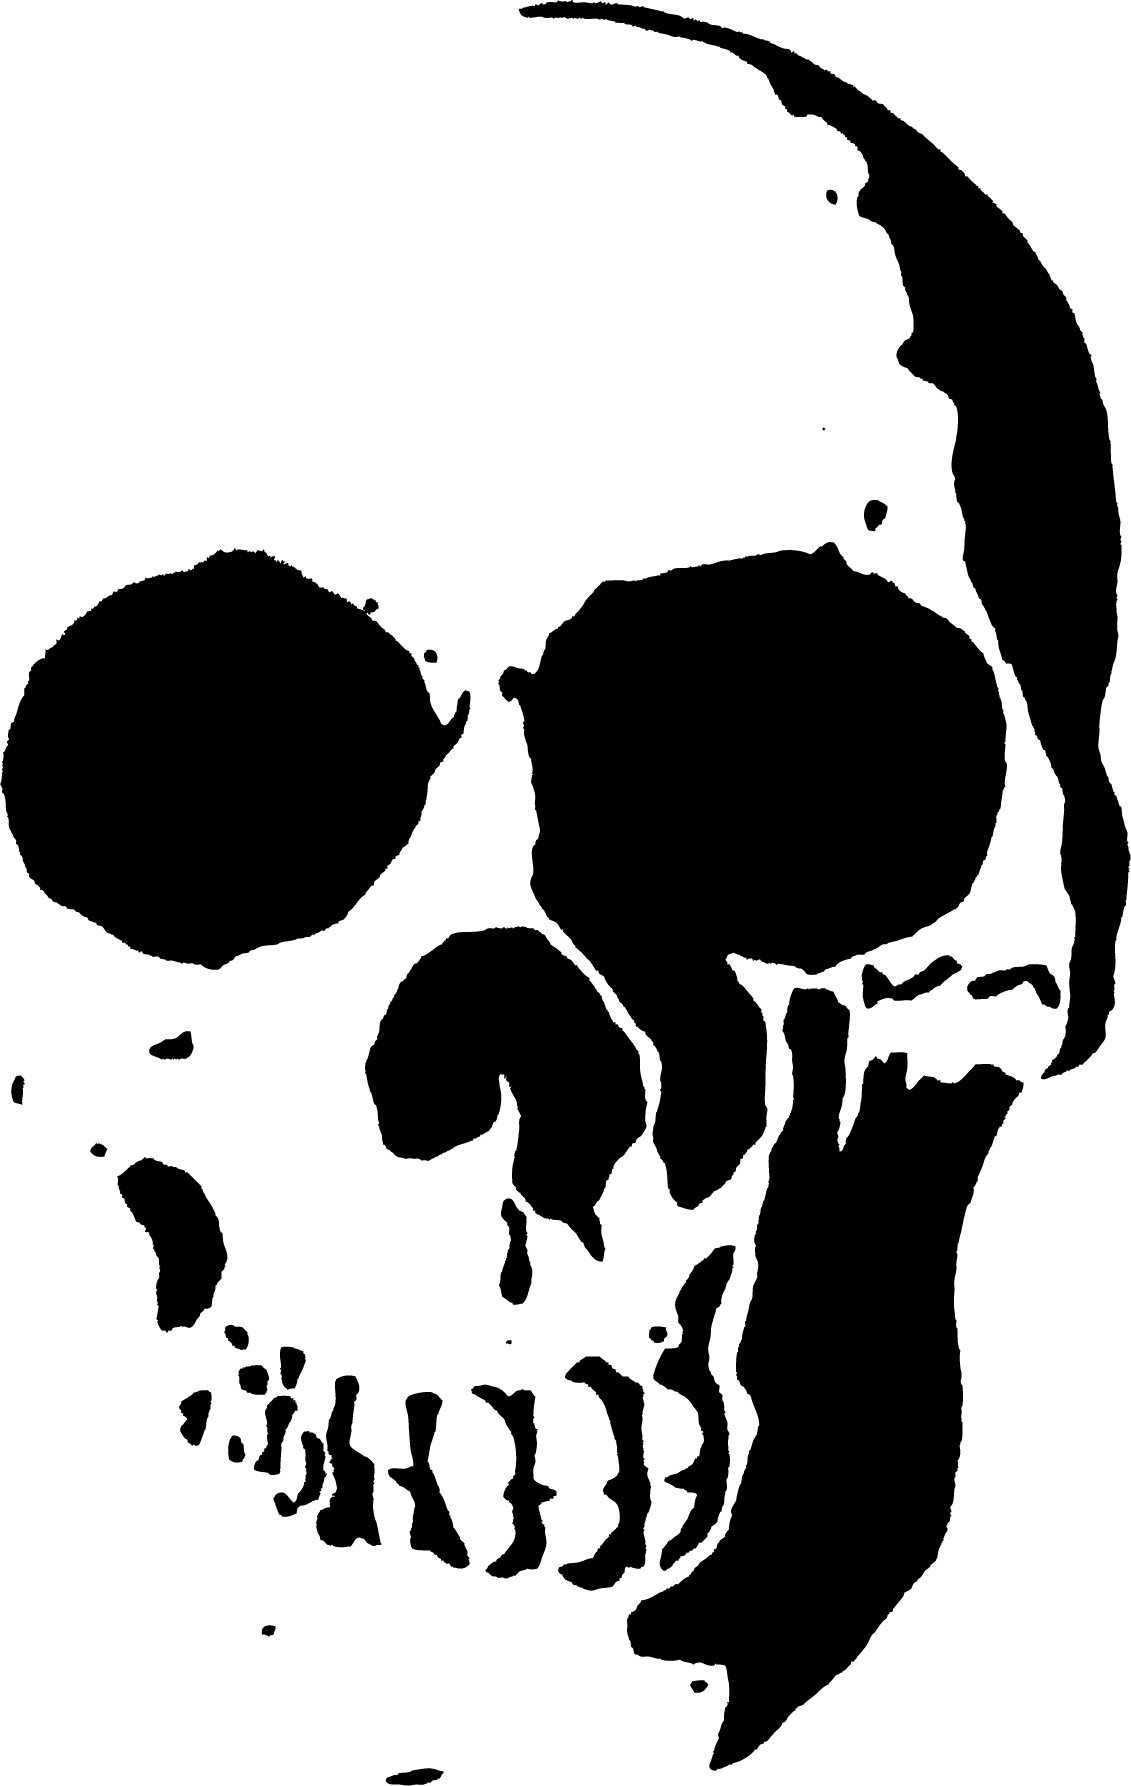 graphic regarding Skull Template Printable titled 23 Totally free Skull Stencil Printable Templates Direct Styles